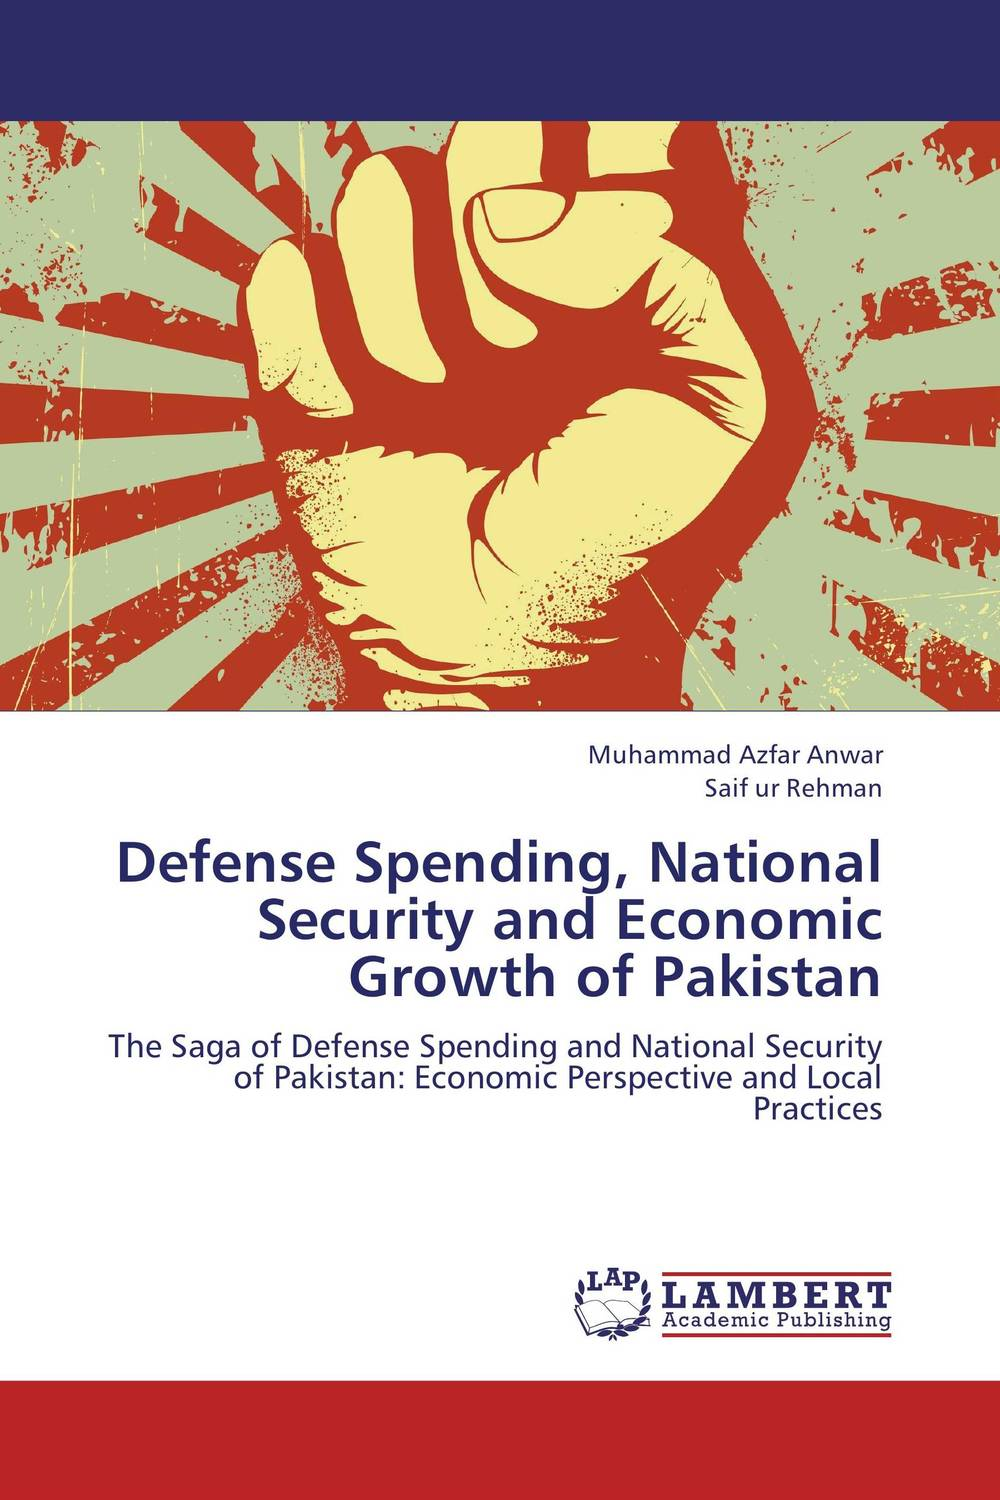 Defense Spending, National Security and Economic Growth of Pakistan guilt and defense – on the legacies of national socialism in postwar germany